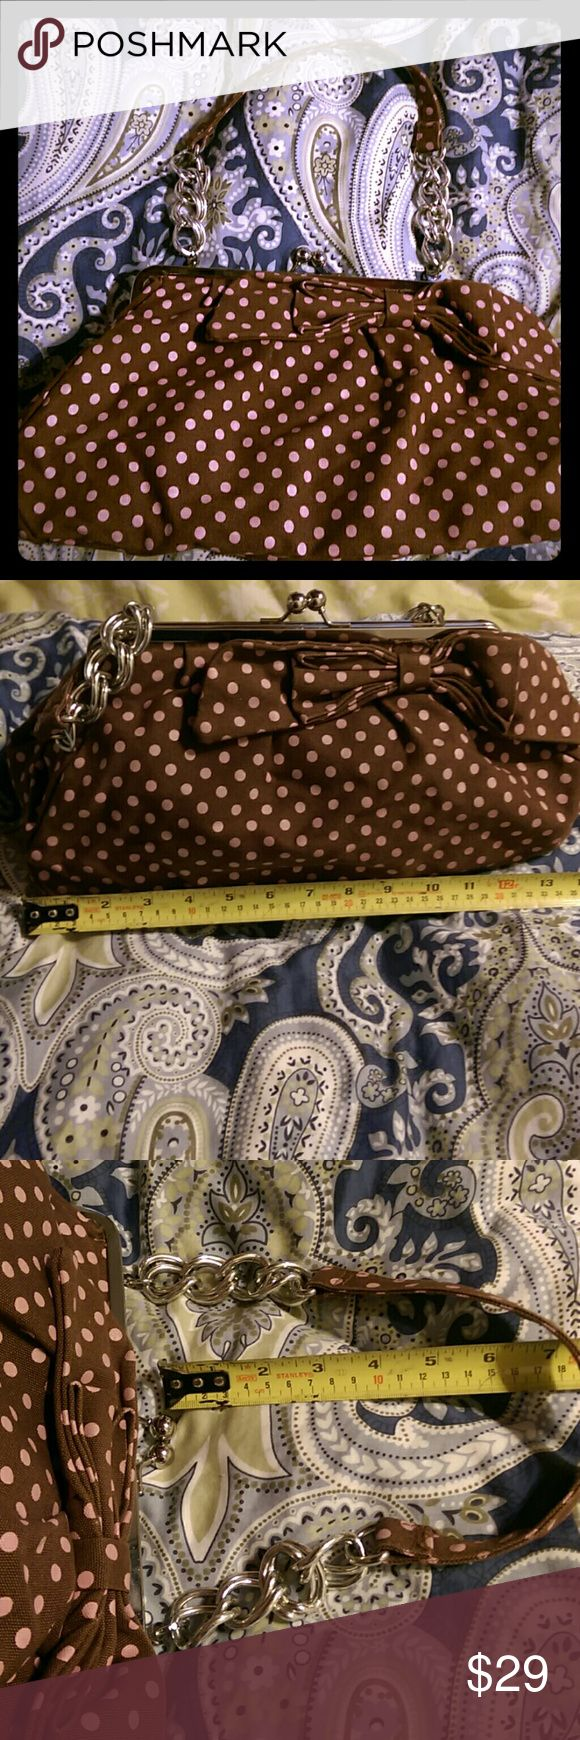 "Delia's Vintage Canvas Purse Delia's vintage! Bow front, pink and brown polka dots, silvertone hardware. Canvas exterior, brown lined interior with 2 slip pockets and a zipper pocket. Really hold quite a lot! Main clasp is pictured like a coin purse. Dimensions: 9"" drop from handles. 14"" wide, 7"" tall, 5.5"" deep at base. Got so many compliments when I used to carry this. Bags Satchels"